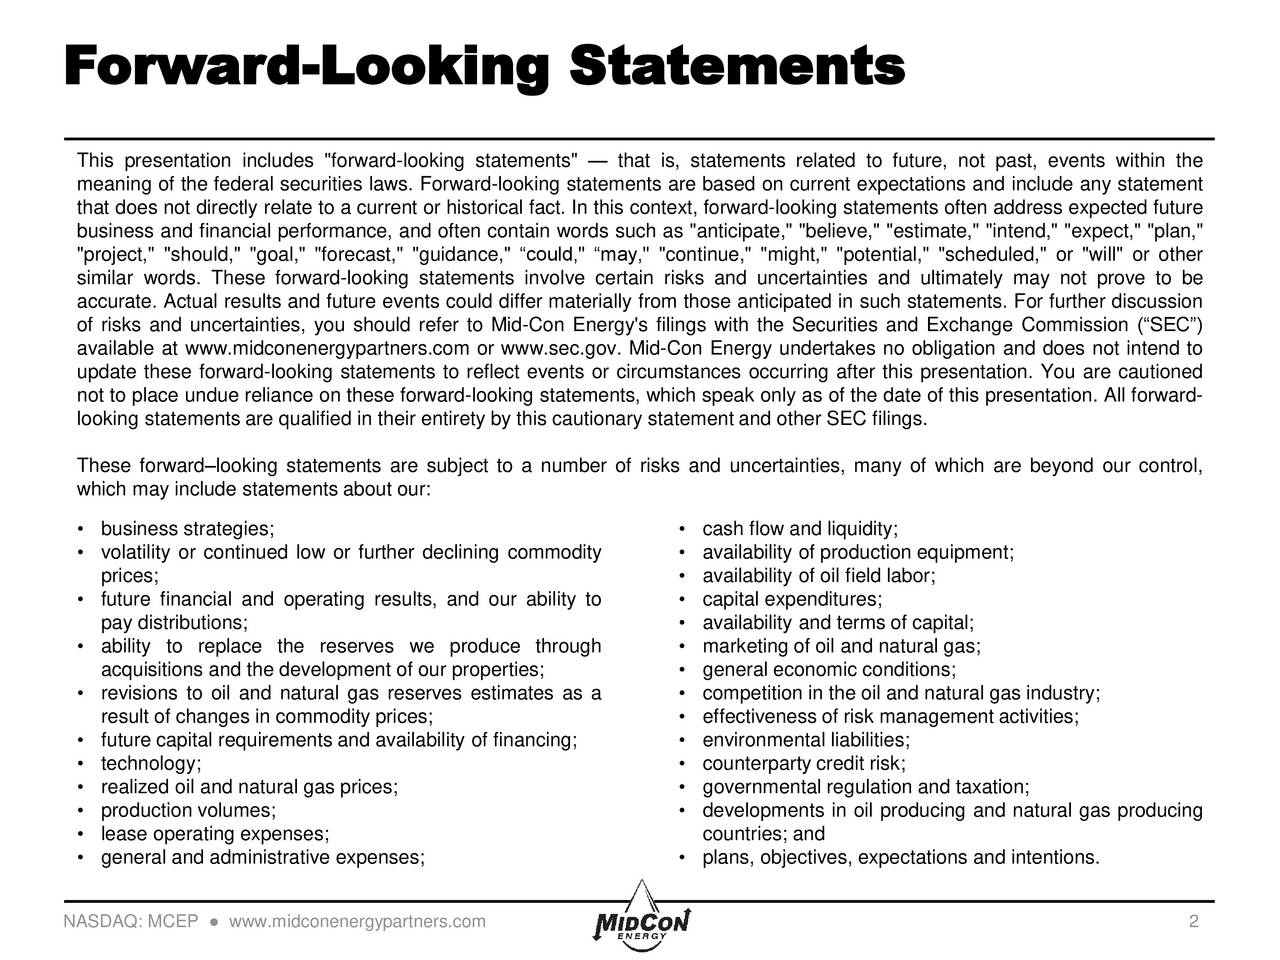 """This presentation includes """"forward-looking statements""""  that is, statements related to future, not past, events within the meaning of the federal securities laws. Forward-looking statements are based on current expectations and include any statement that does not directly relate to a current or historical fact. In this context, forward-looking statements often address expected future business and financial performance, and often contain words such as """"anticipate,"""" """"believe,"""" """"estimate,"""" """"intend,"""" """"expect,"""" """"plan,"""" """"project,"""" """"should,"""" """"goal,"""" """"forecast,"""" """"guidance,"""" could,"""" may,"""" """"continue,"""" """"might,"""" """"potential,"""" """"scheduled,"""" or """"will"""" or other similar words. These forward-looking statements involve certain risks and uncertainties and ultimately may not prove to be accurate. Actual results and future events could differ materially from those anticipated in such statements. For further discussion of risks and uncertainties, you should refer to Mid-Con Energy's filings with the Securities and Exchange Commission (SEC) available at www.midconenergypartners.com or www.sec.gov. Mid-Con Energy undertakes no obligation and does not intend to update these forward-looking statements to reflect events or circumstances occurring after this presentation. You are cautioned not to place undue reliance on these forward-looking statements, which speak only as of the date of this presentation. All forward- looking statements are qualified in their entirety by this cautionary statement and other SEC filings. These forwardlooking statements are subject to a number of risks and uncertainties, many of which are beyond our control, which may include statements about our: business strategies;  cash flow and liquidity; volatility or continued low or further declining commodity  availability of production equipment; prices;  availability of oil field labor; future financial and operating results, and our ability to  capital expenditures; pay distributions;  availability and terms of capita"""